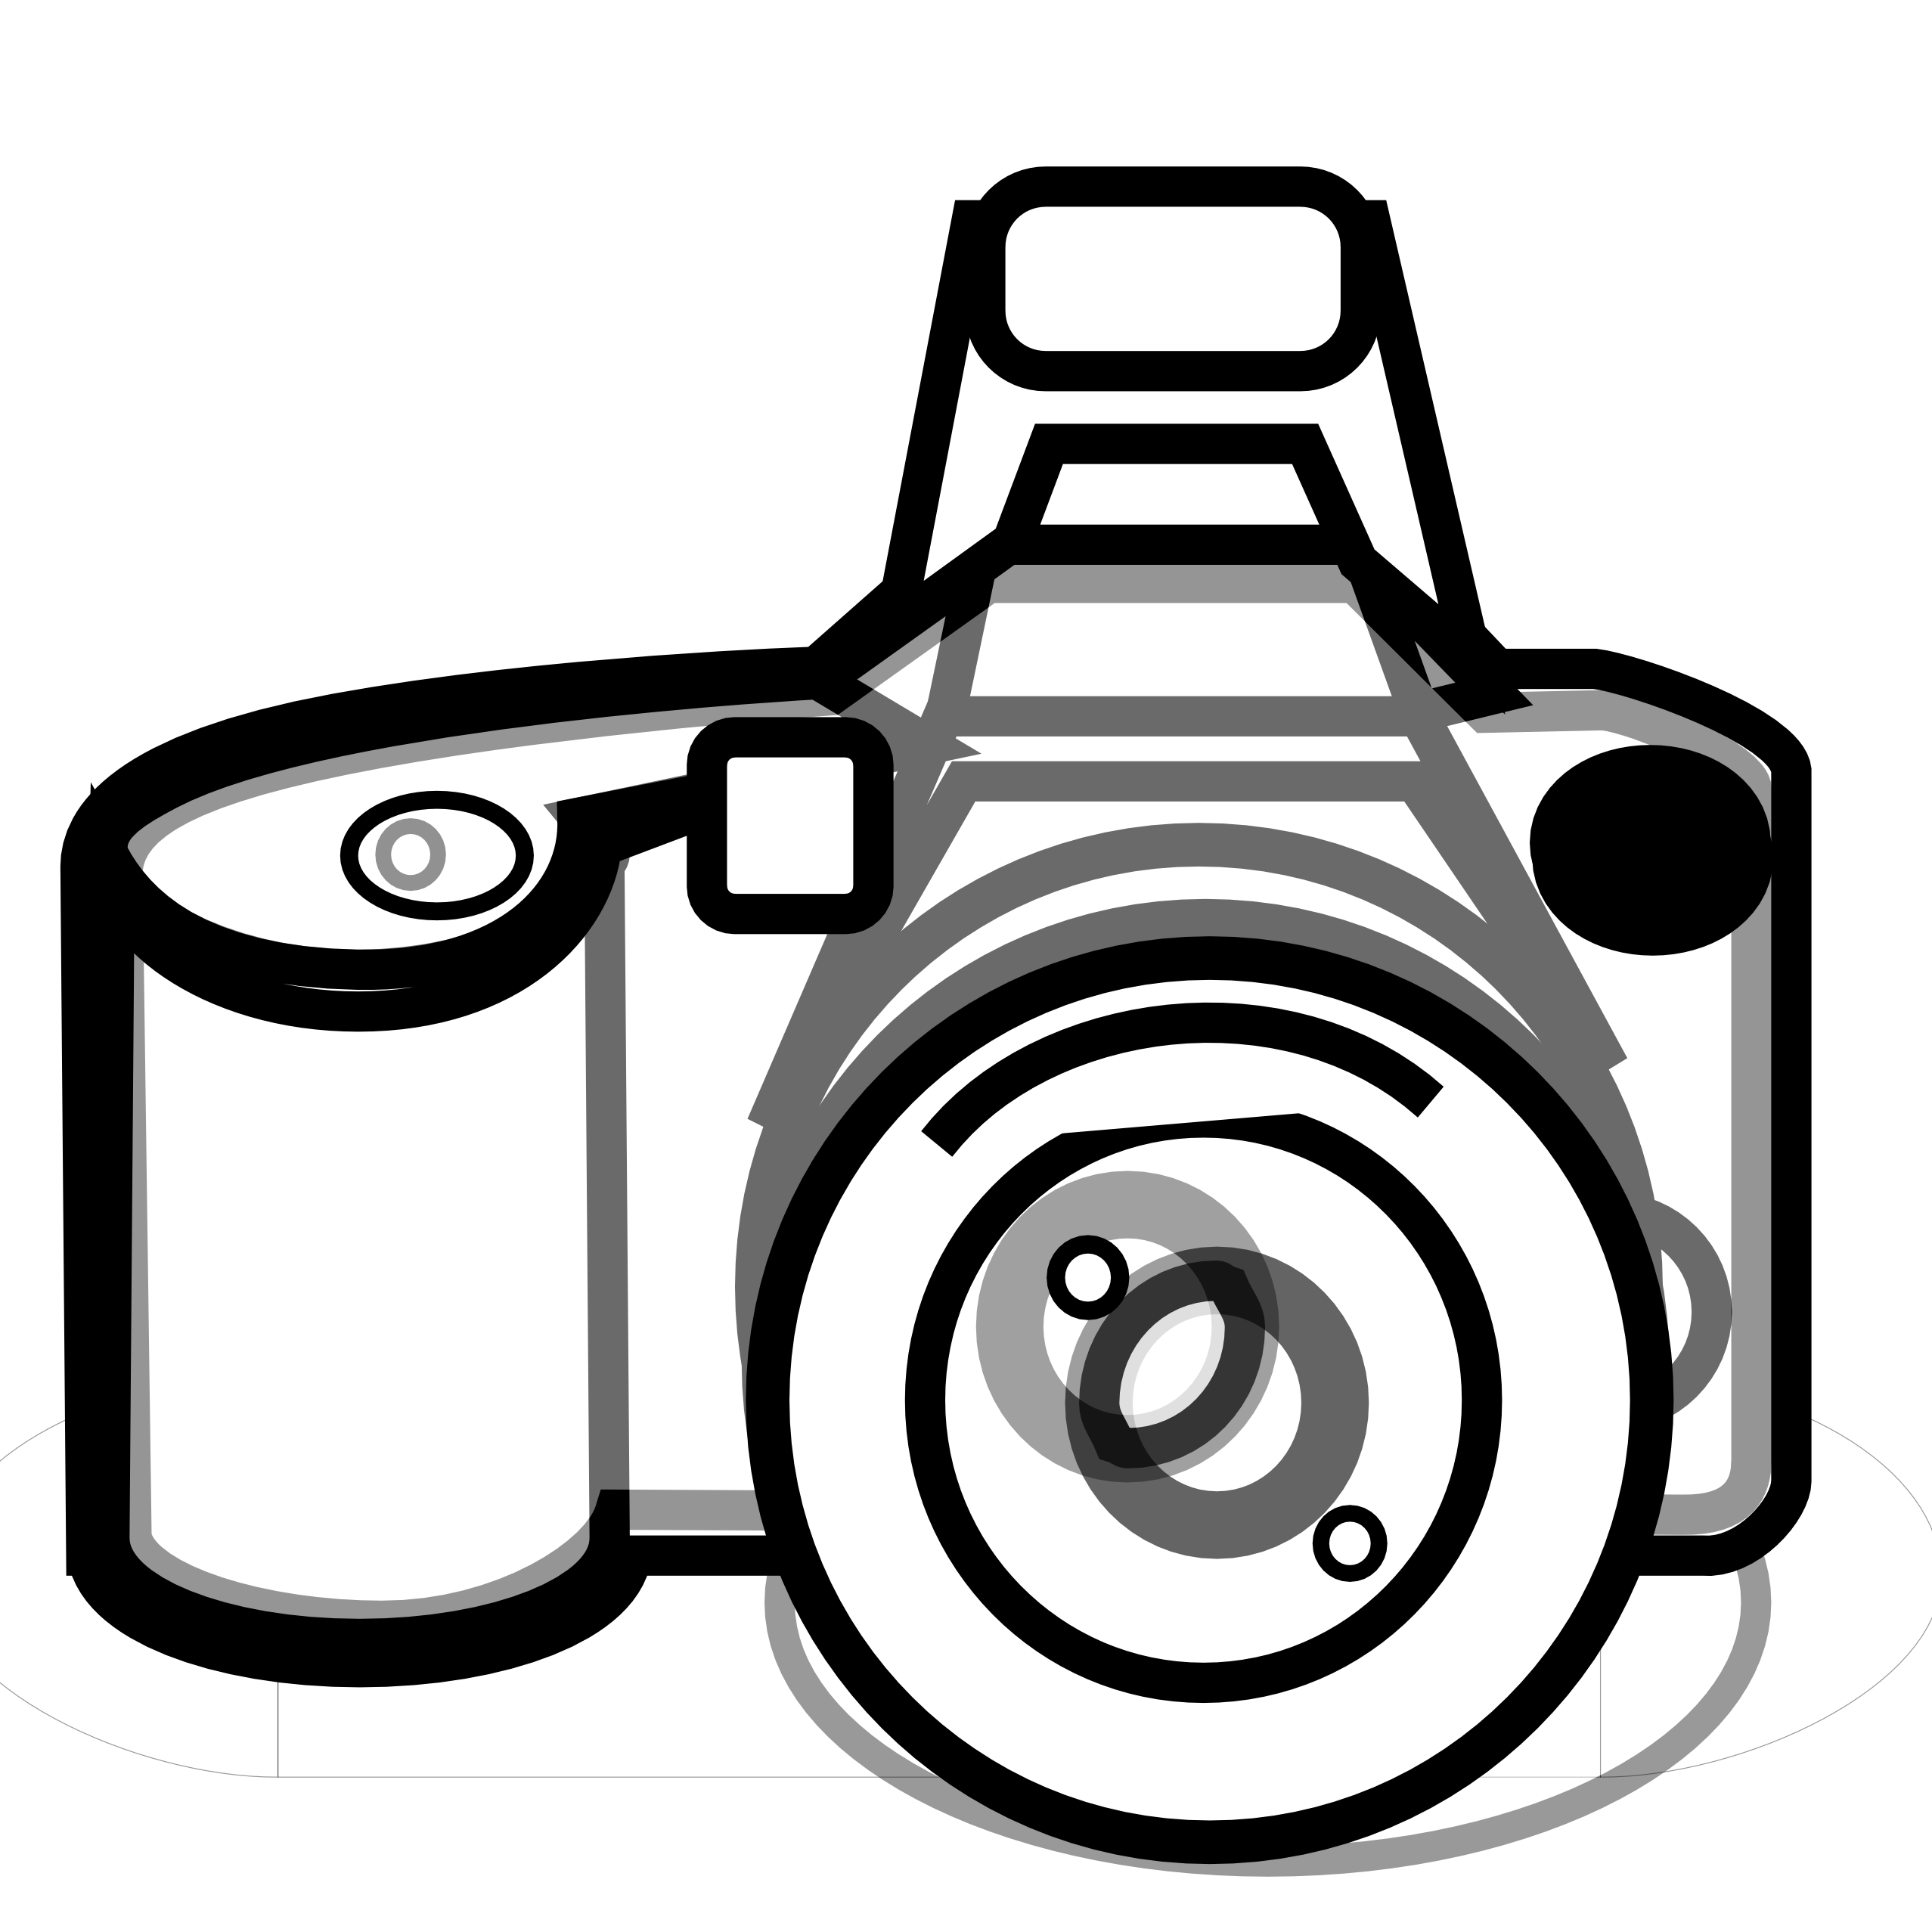 camera clipart black and white png 8 clipart station rh clipartstation com cctv camera images clip art surveillance camera images clipart